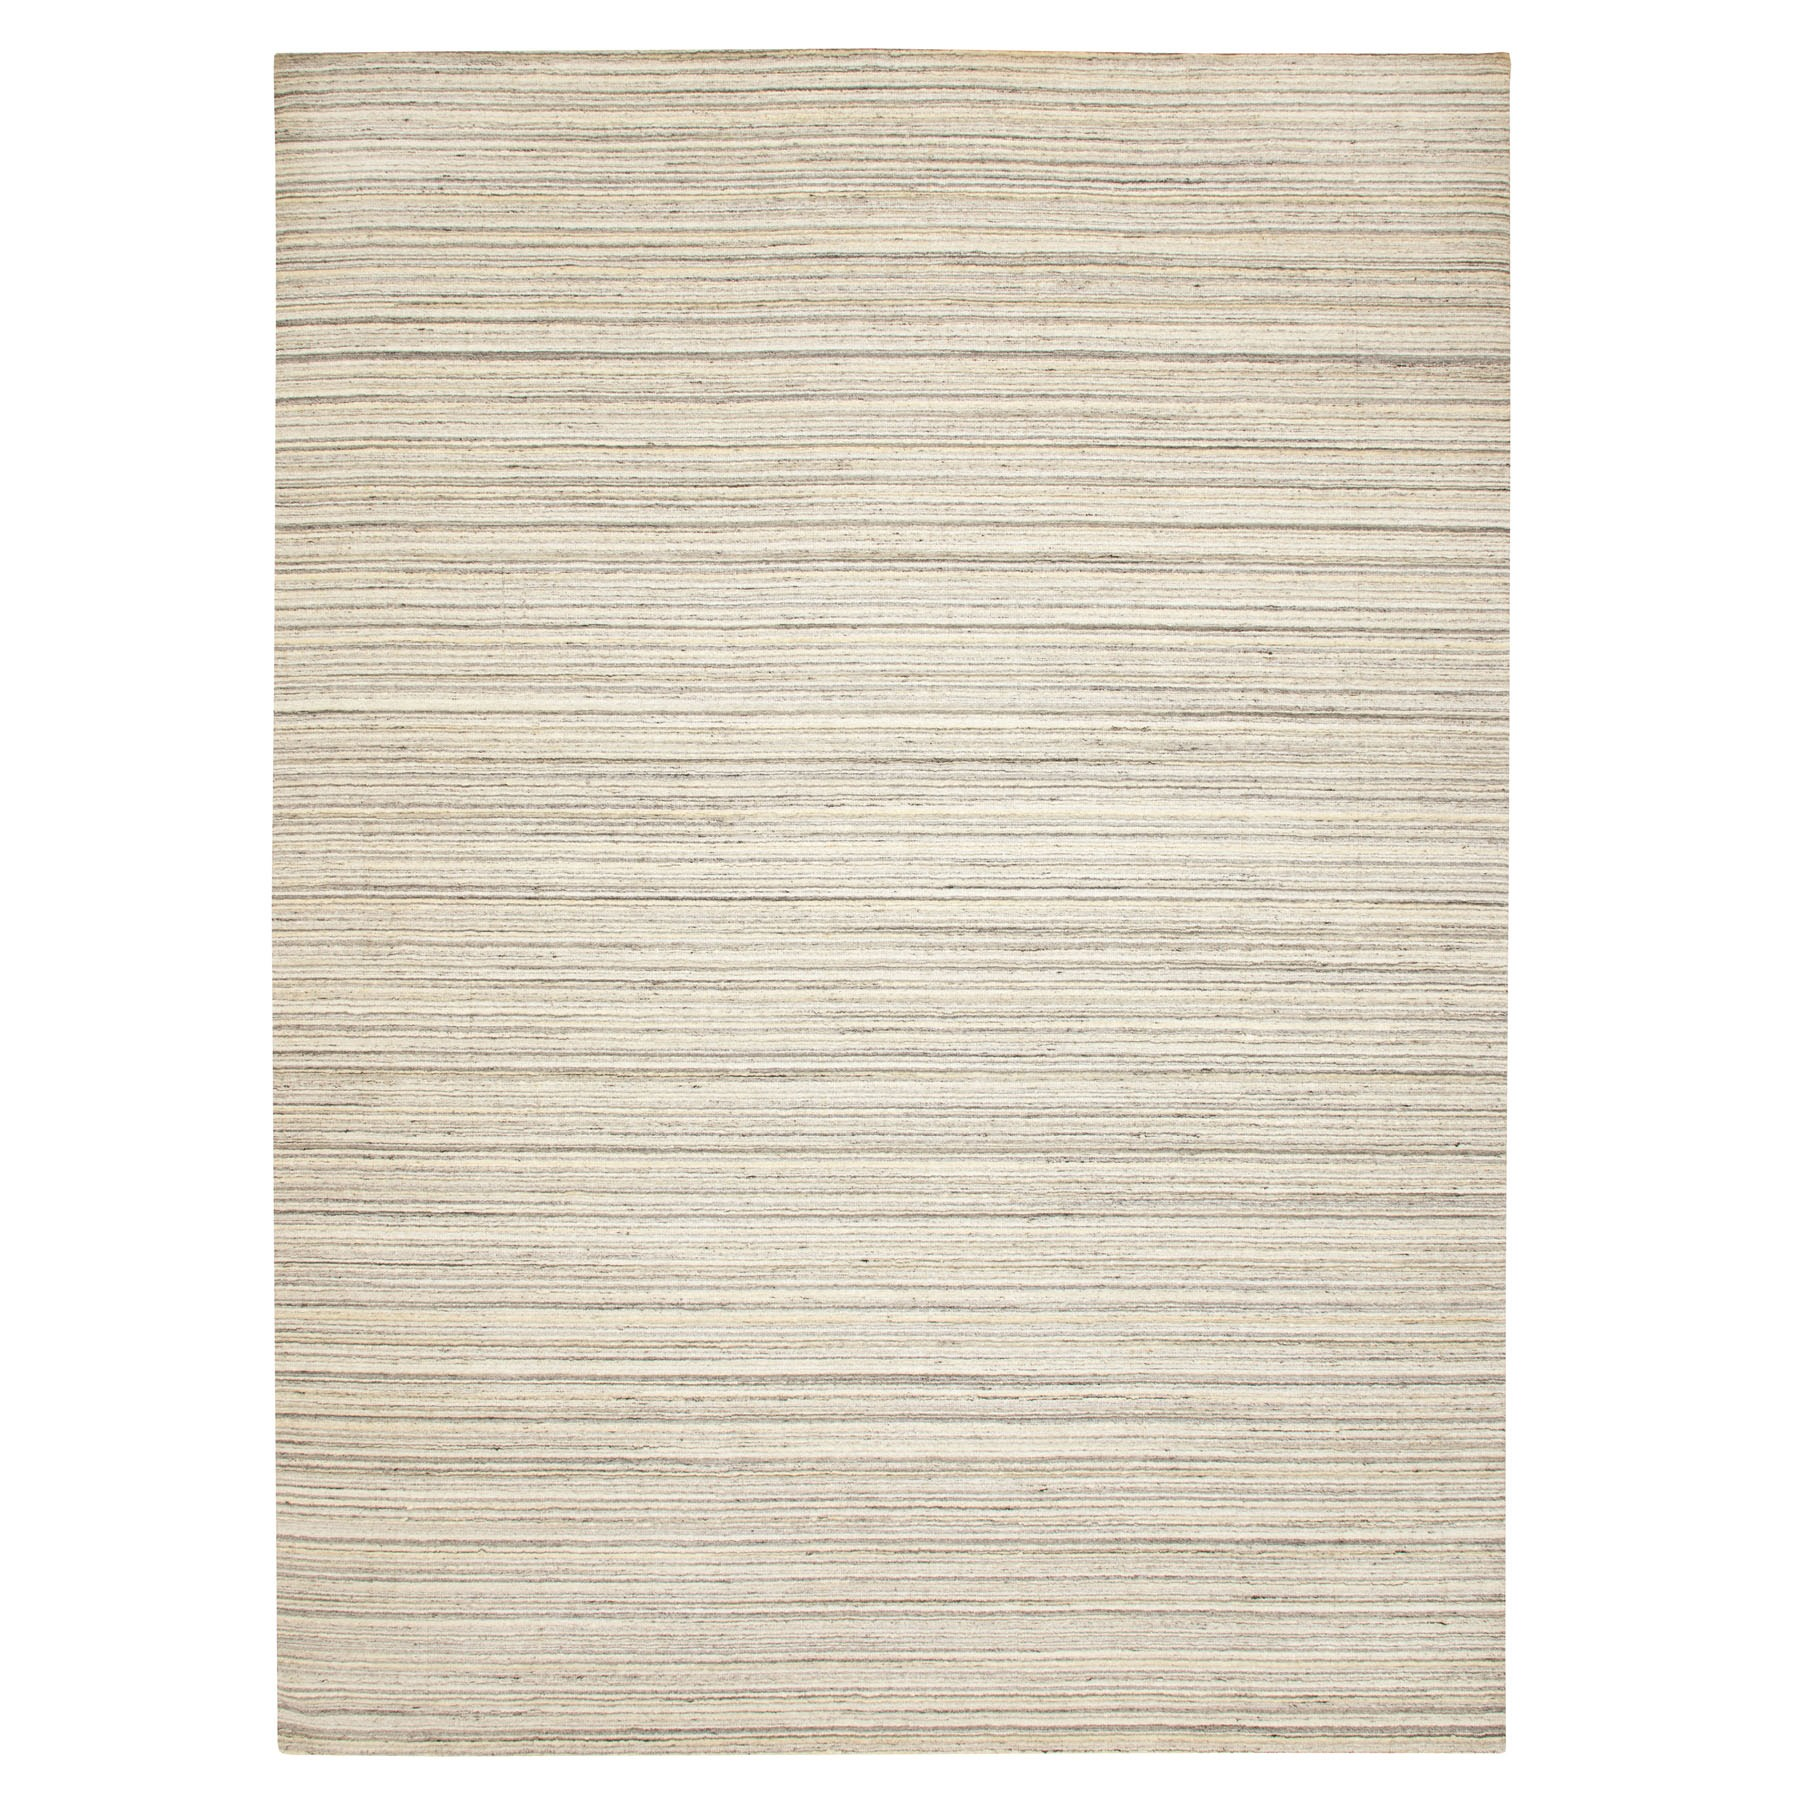 Mid Century Modern Collection Hand Loomed Beige Rug No: 1116750